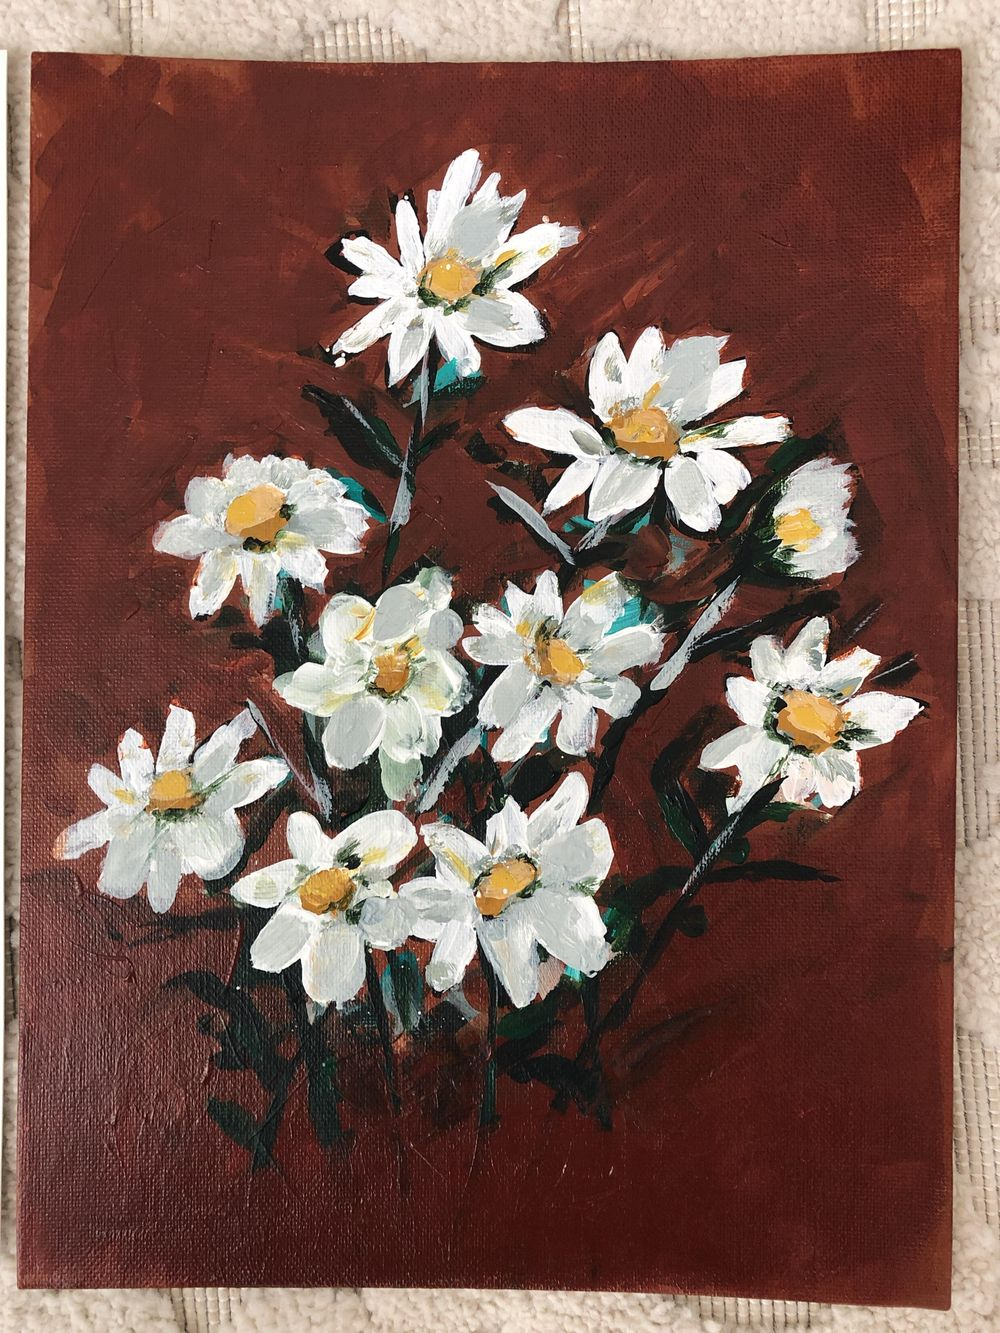 Expressive daisies two ways - image 1 - student project